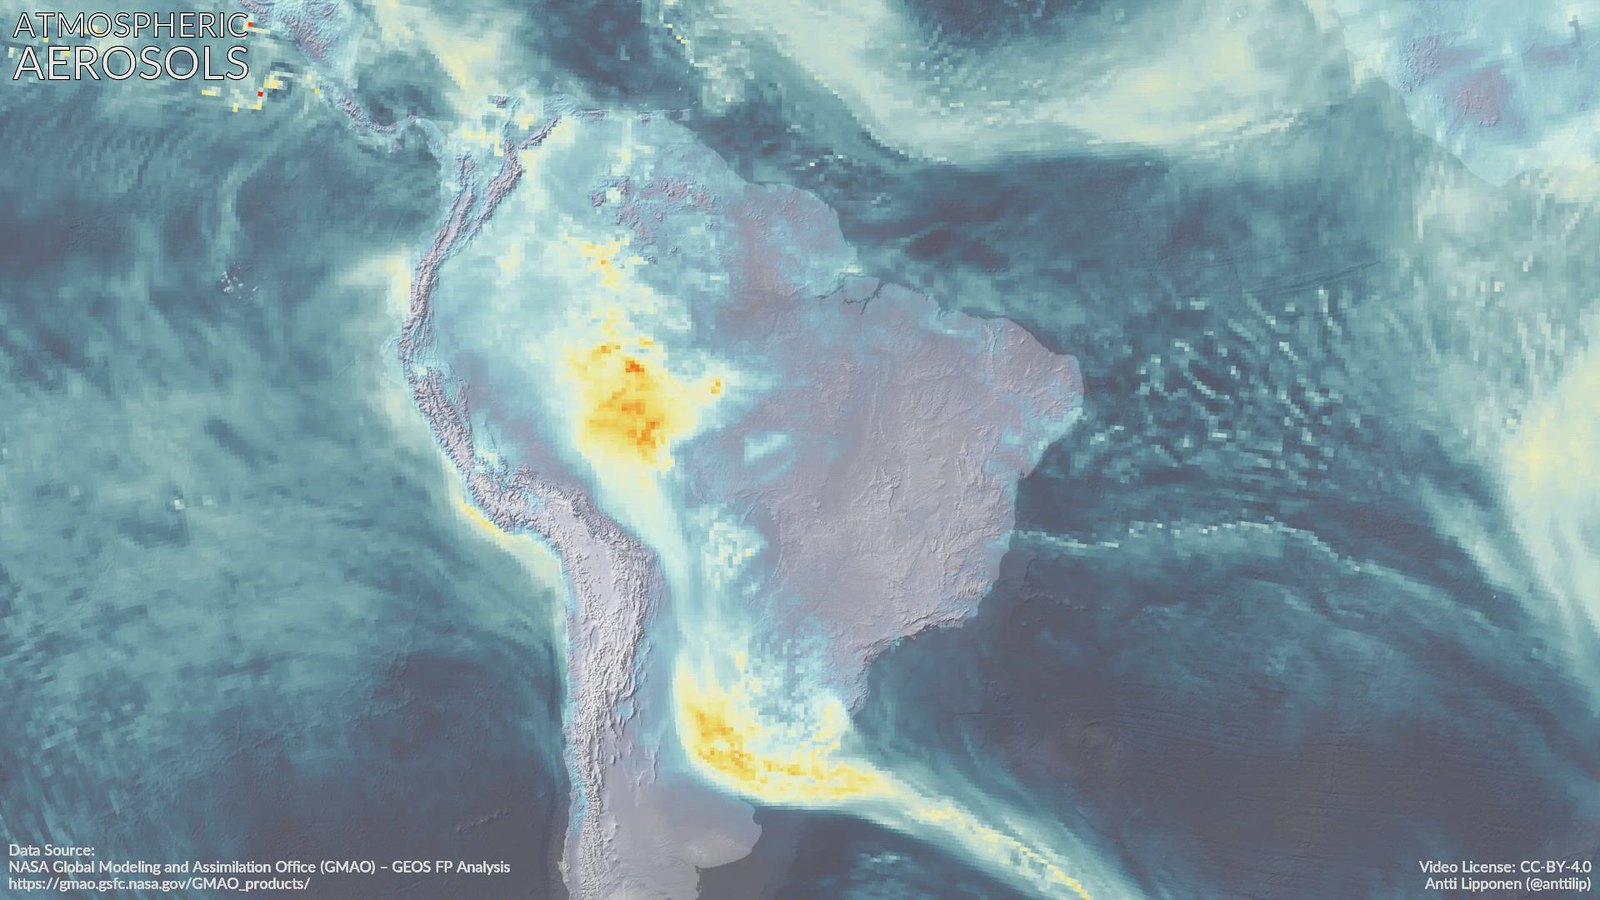 Atmospheric aerosols over South America 8 - 22 August 2019